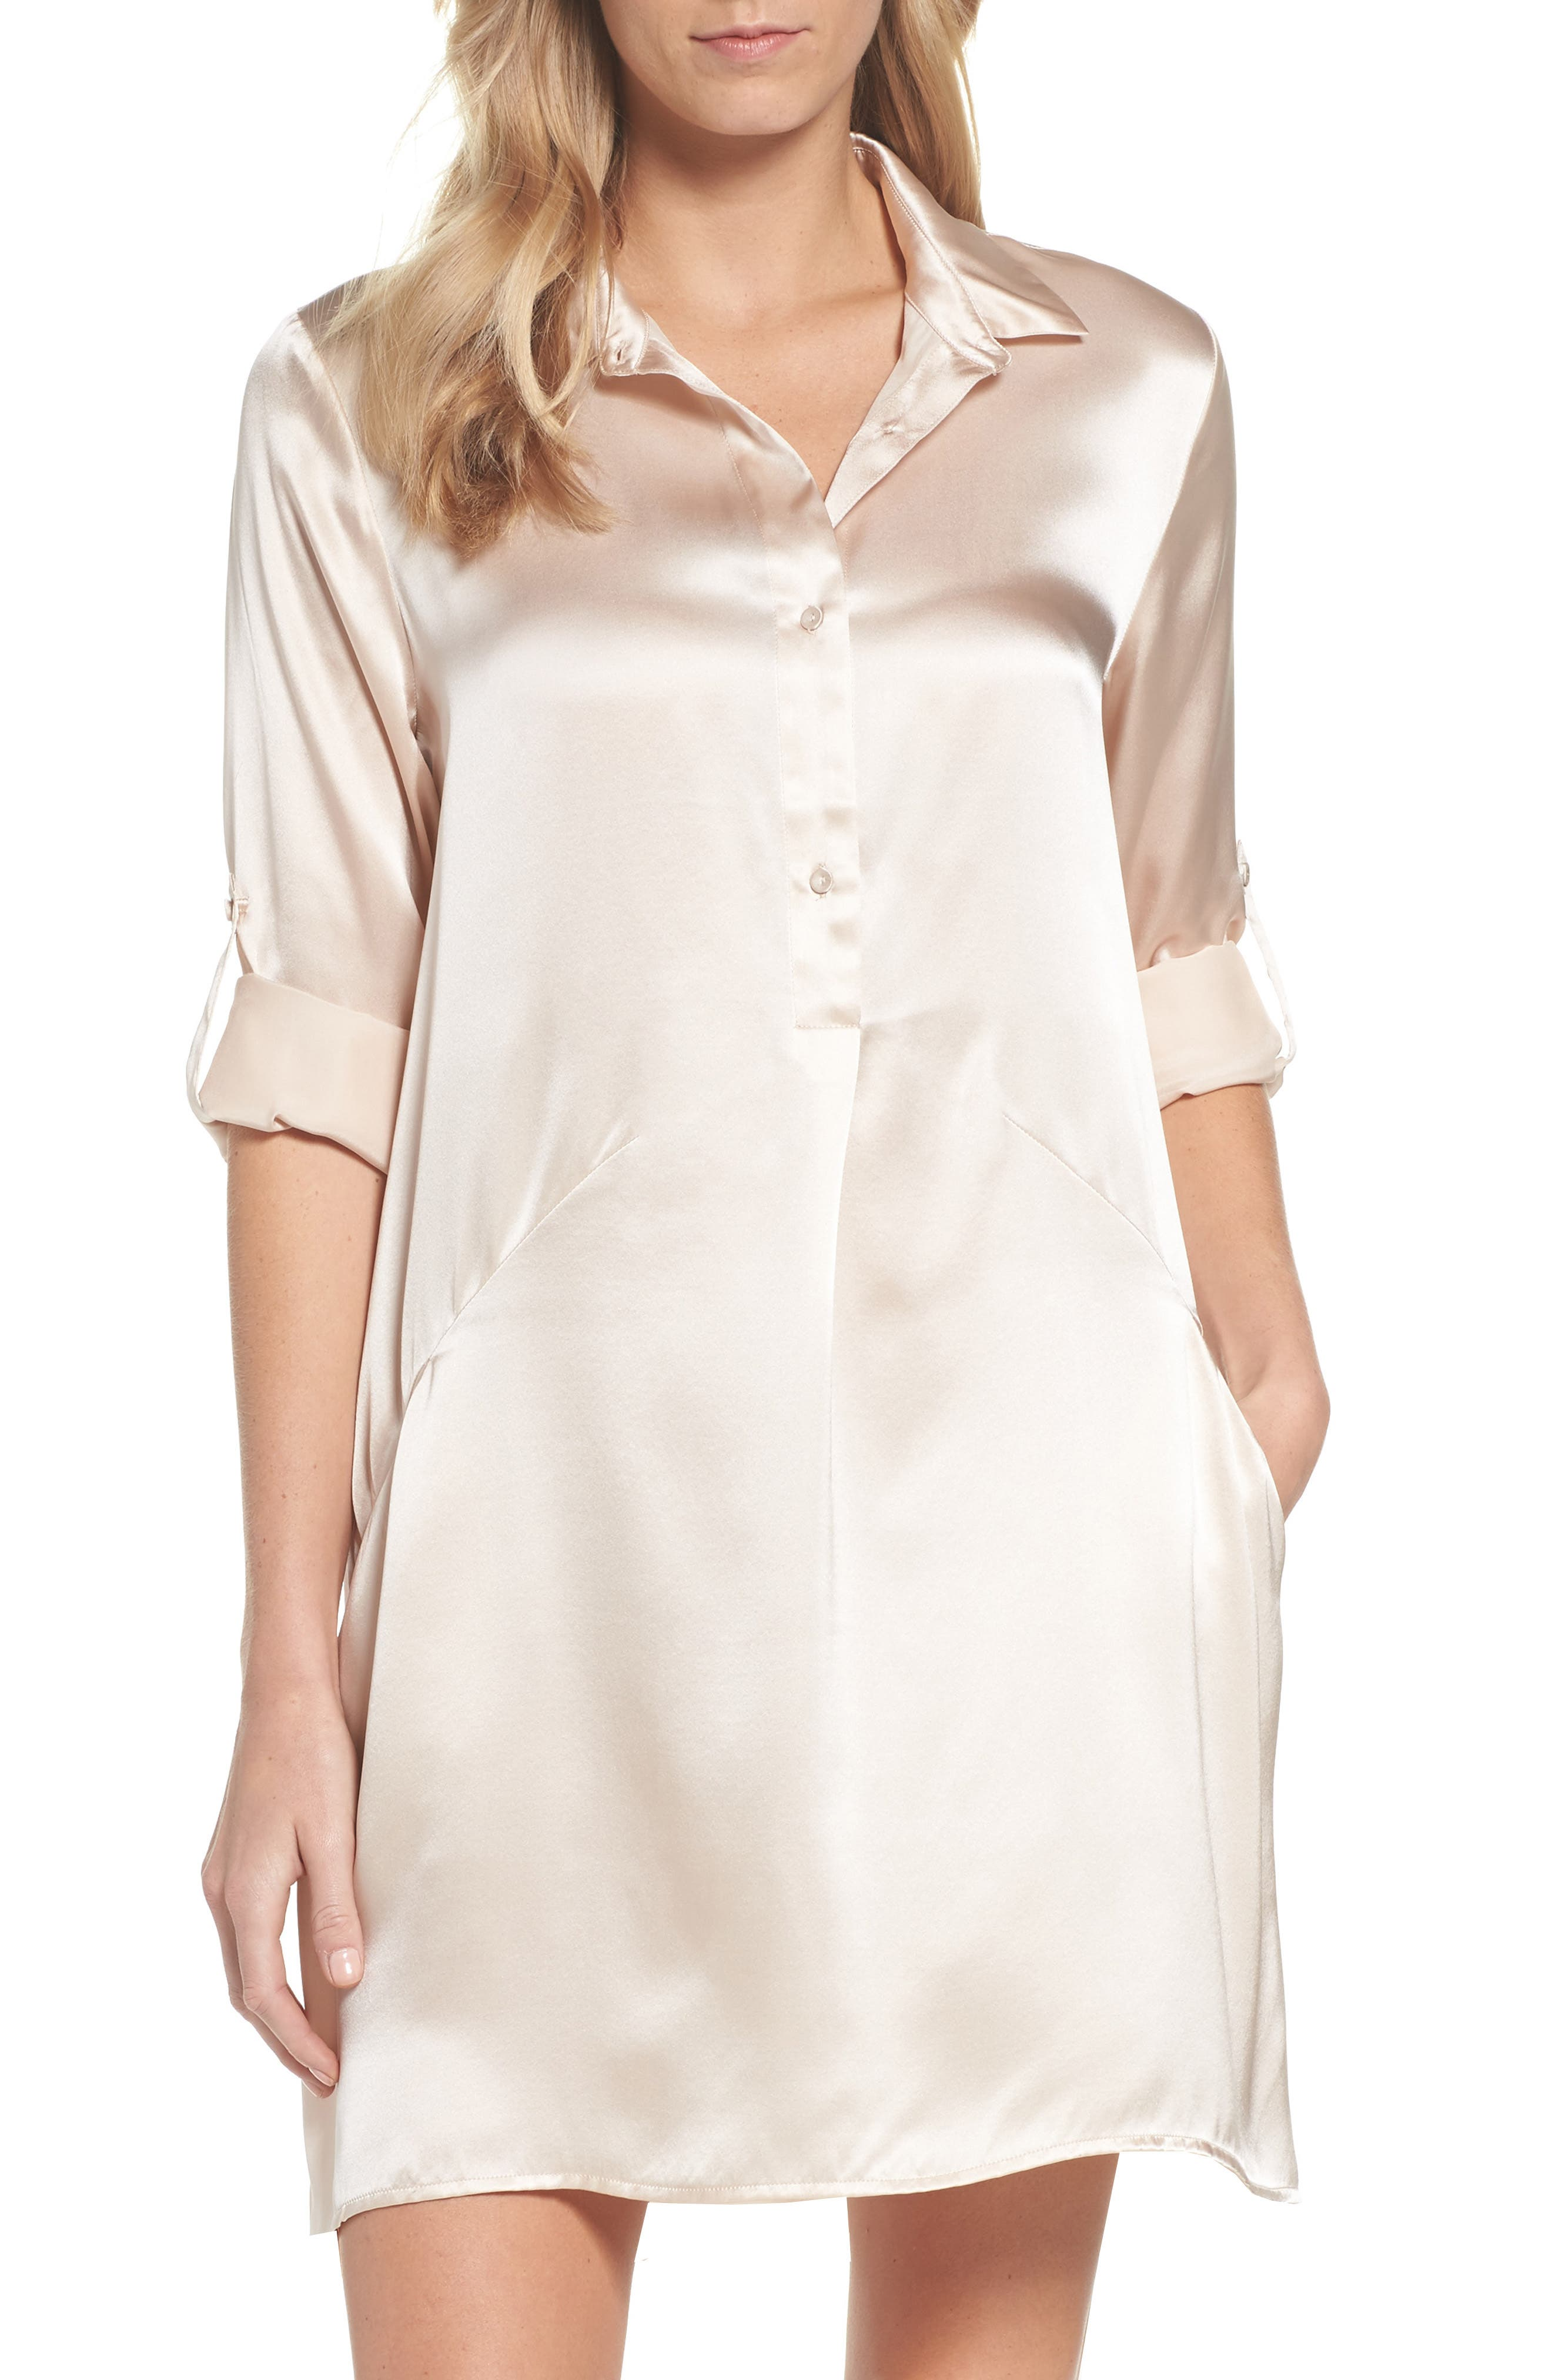 Silk Sleep Shirt,                             Main thumbnail 1, color,                             Romance